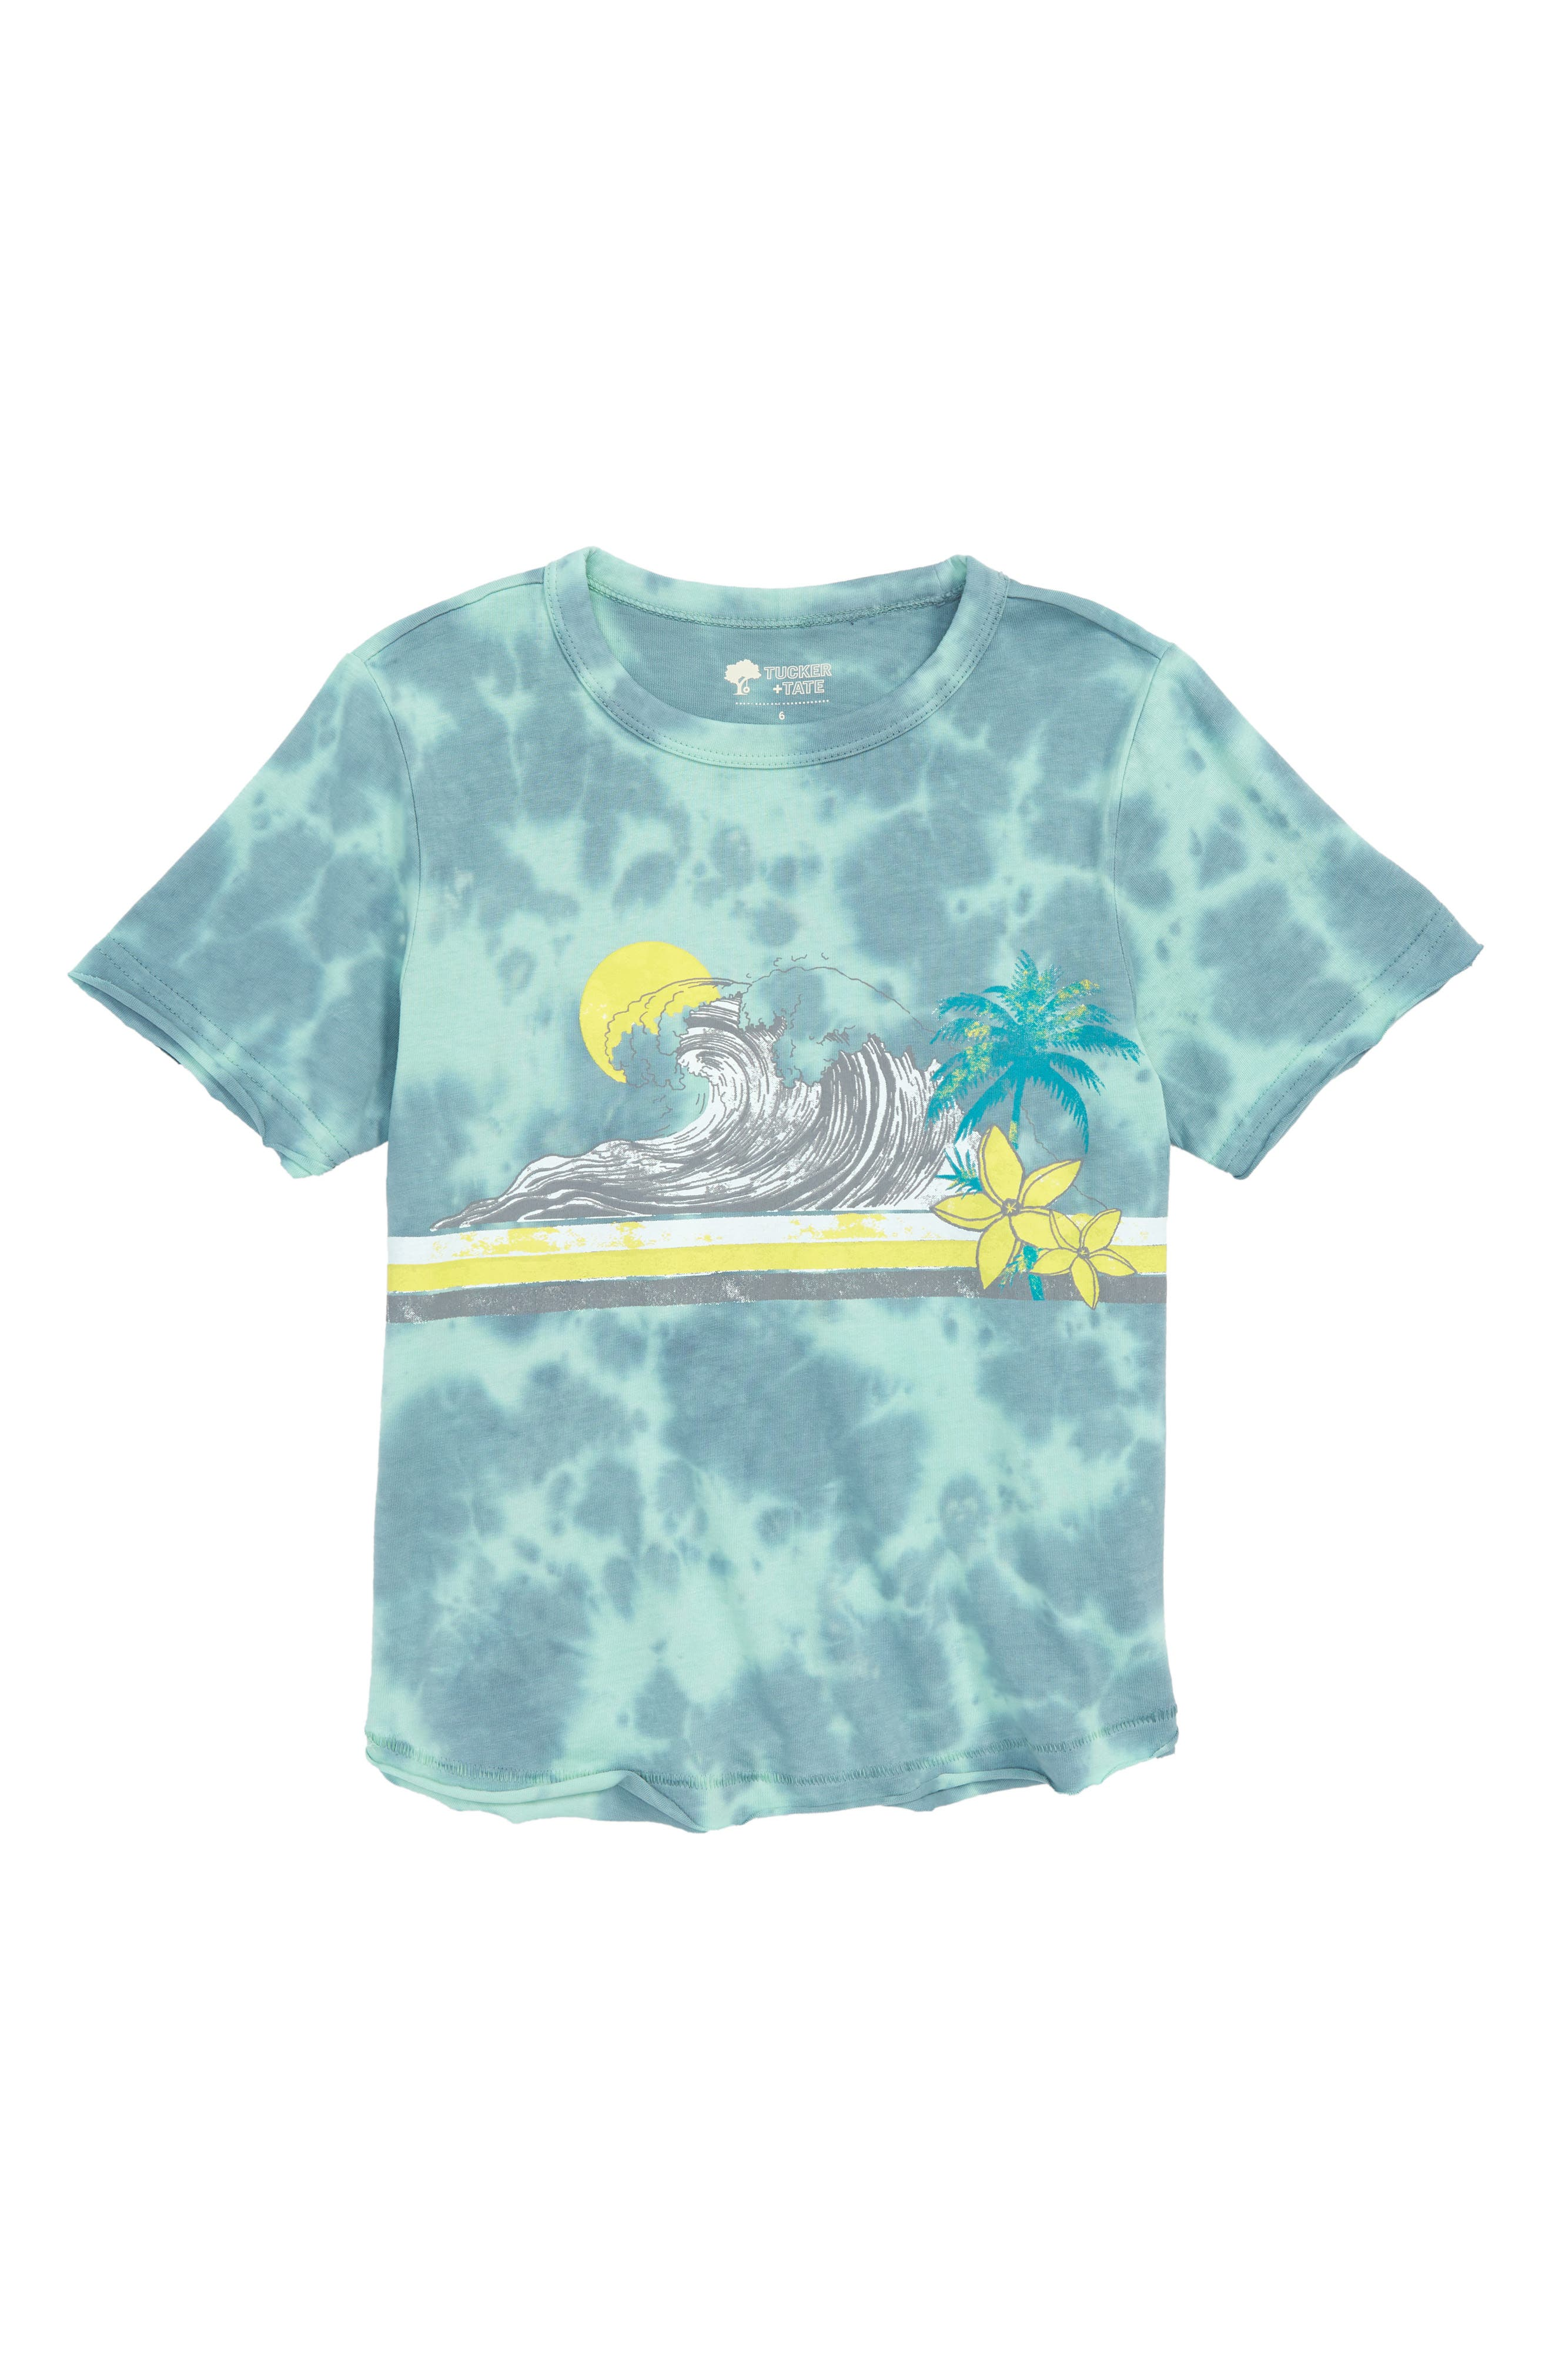 Tucker + Tate Washed Graphic T-Shirt (Toddler Boys & Little Boys)